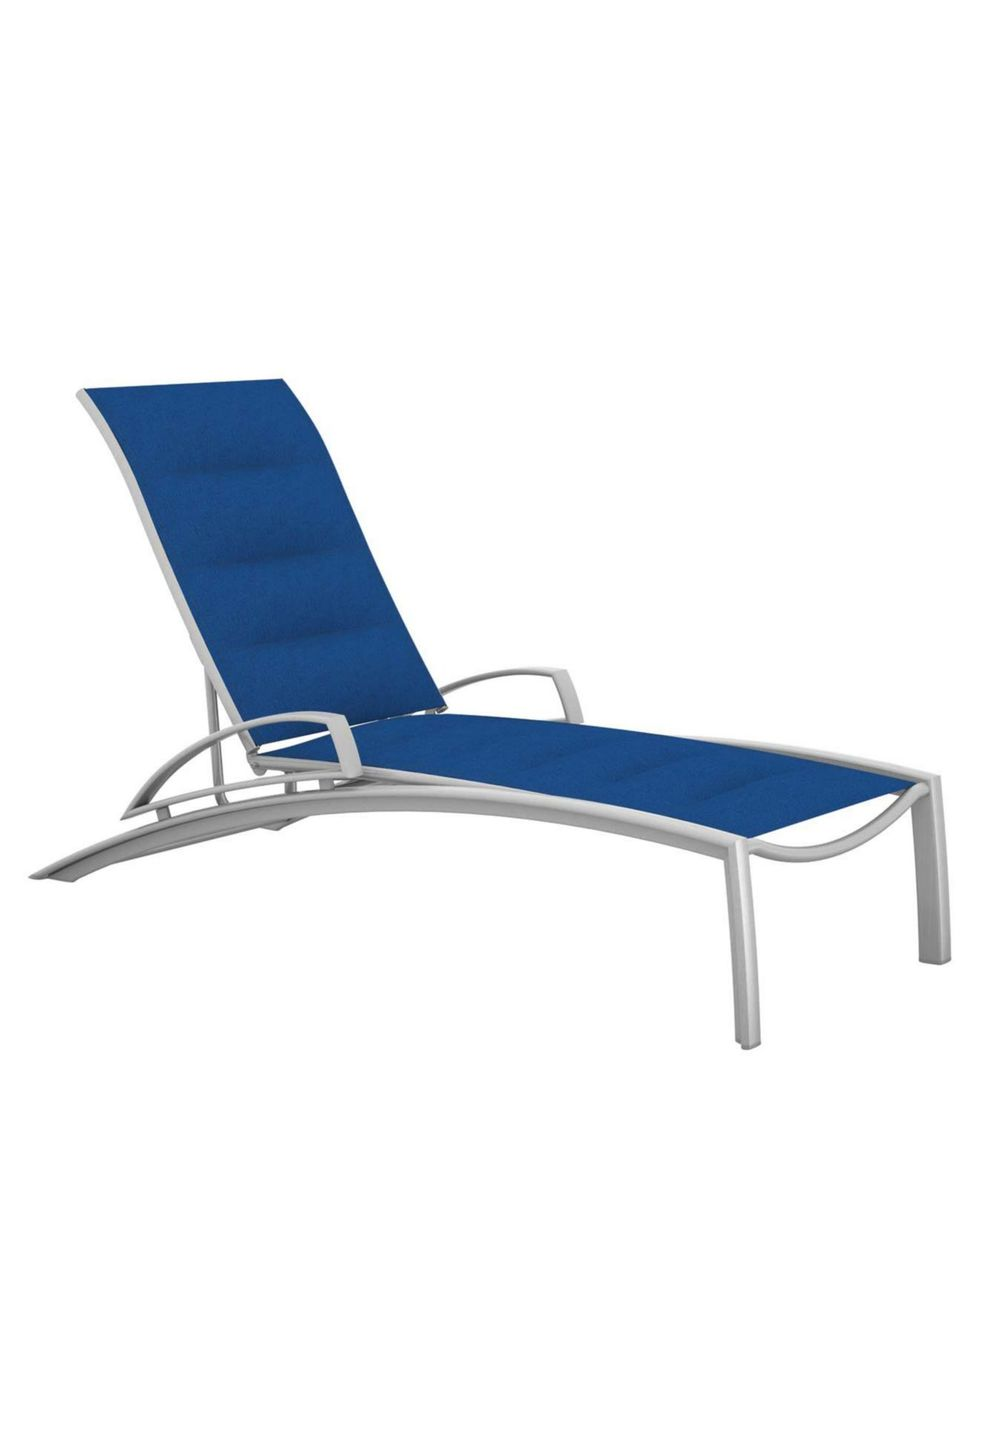 Tropitone Furniture - Chaise Lounge with Arms